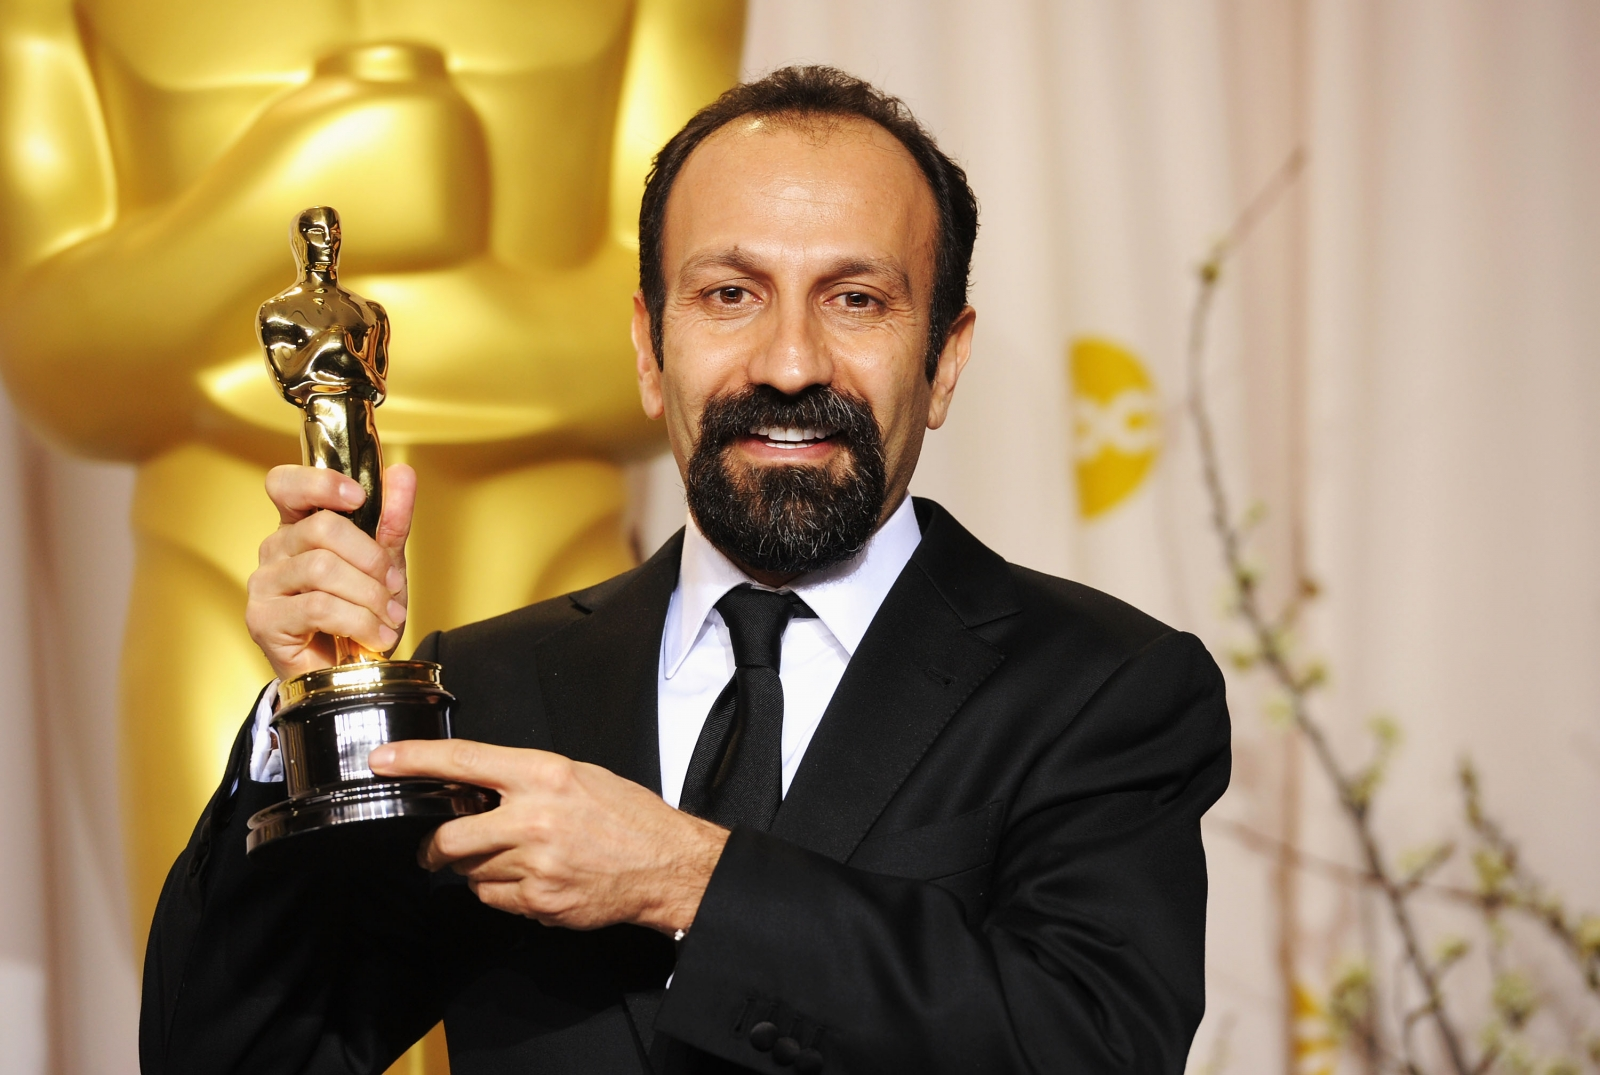 The Salesman director Asghar Farhadi boycotts the Oscars because of Trump's travel ban